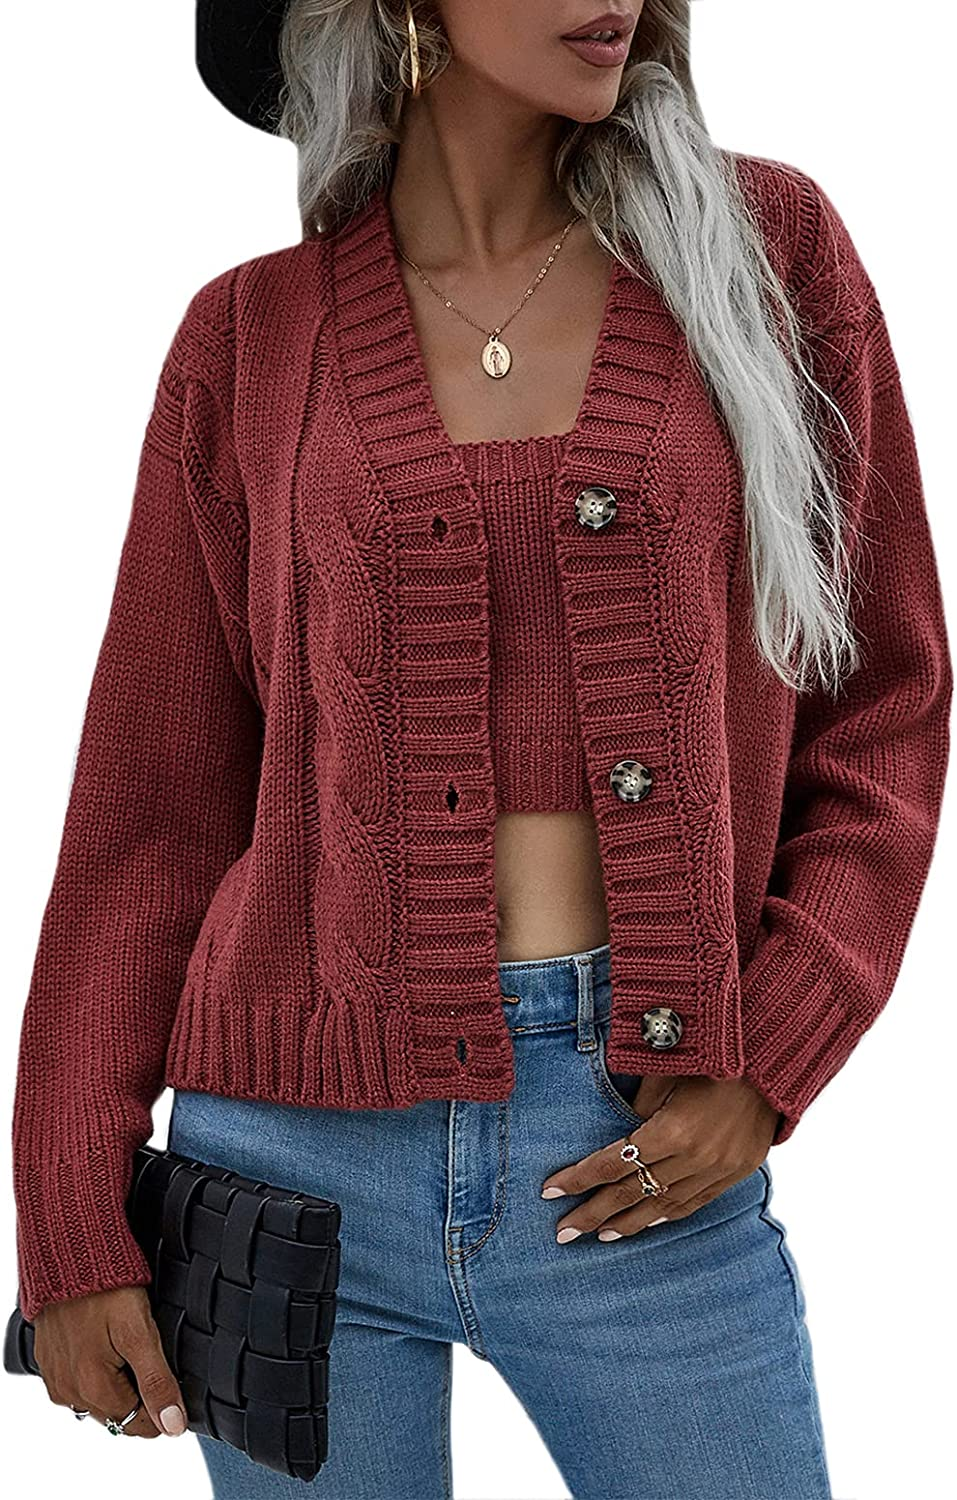 Mansy Womens Sexy Cardigan Sweaters Set Cropped Tank Tops with Casual Buttons Down Outerwear Two Piece Outfits